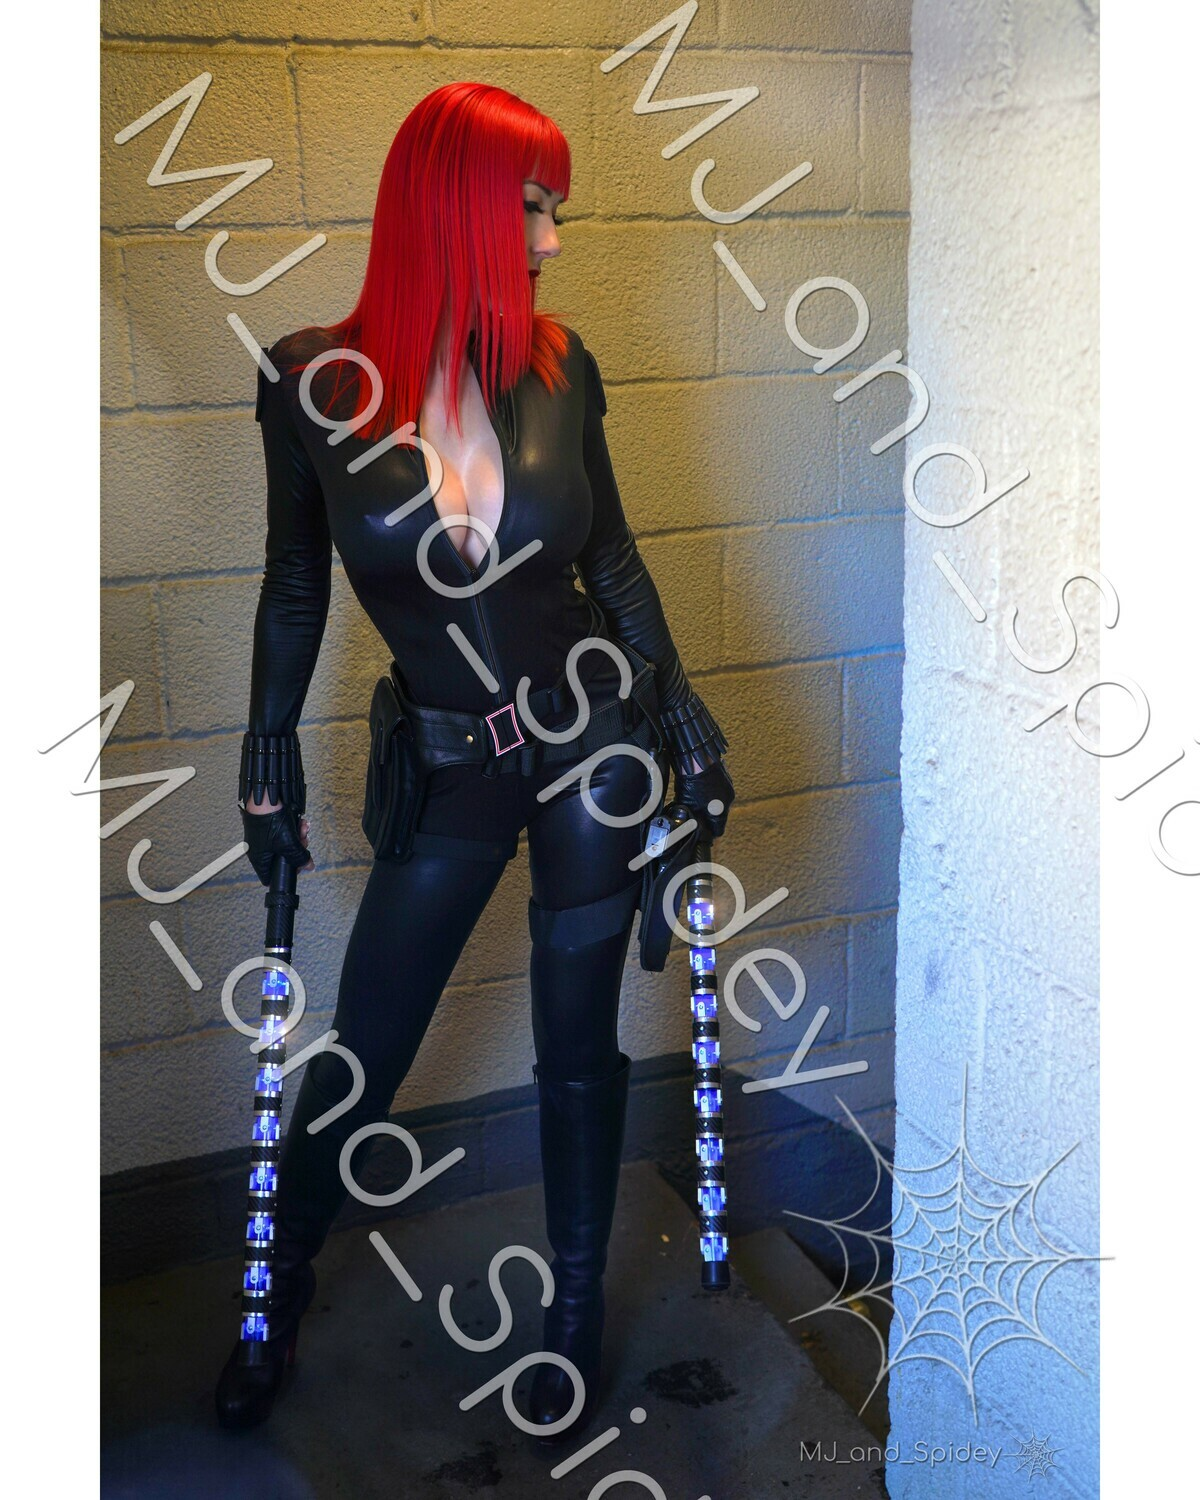 Marvel - Avengers - Black Widow No. 9 - 8x10 Cosplay Print (@MJ_and_Spidey, MJ and Spidey, Comics)